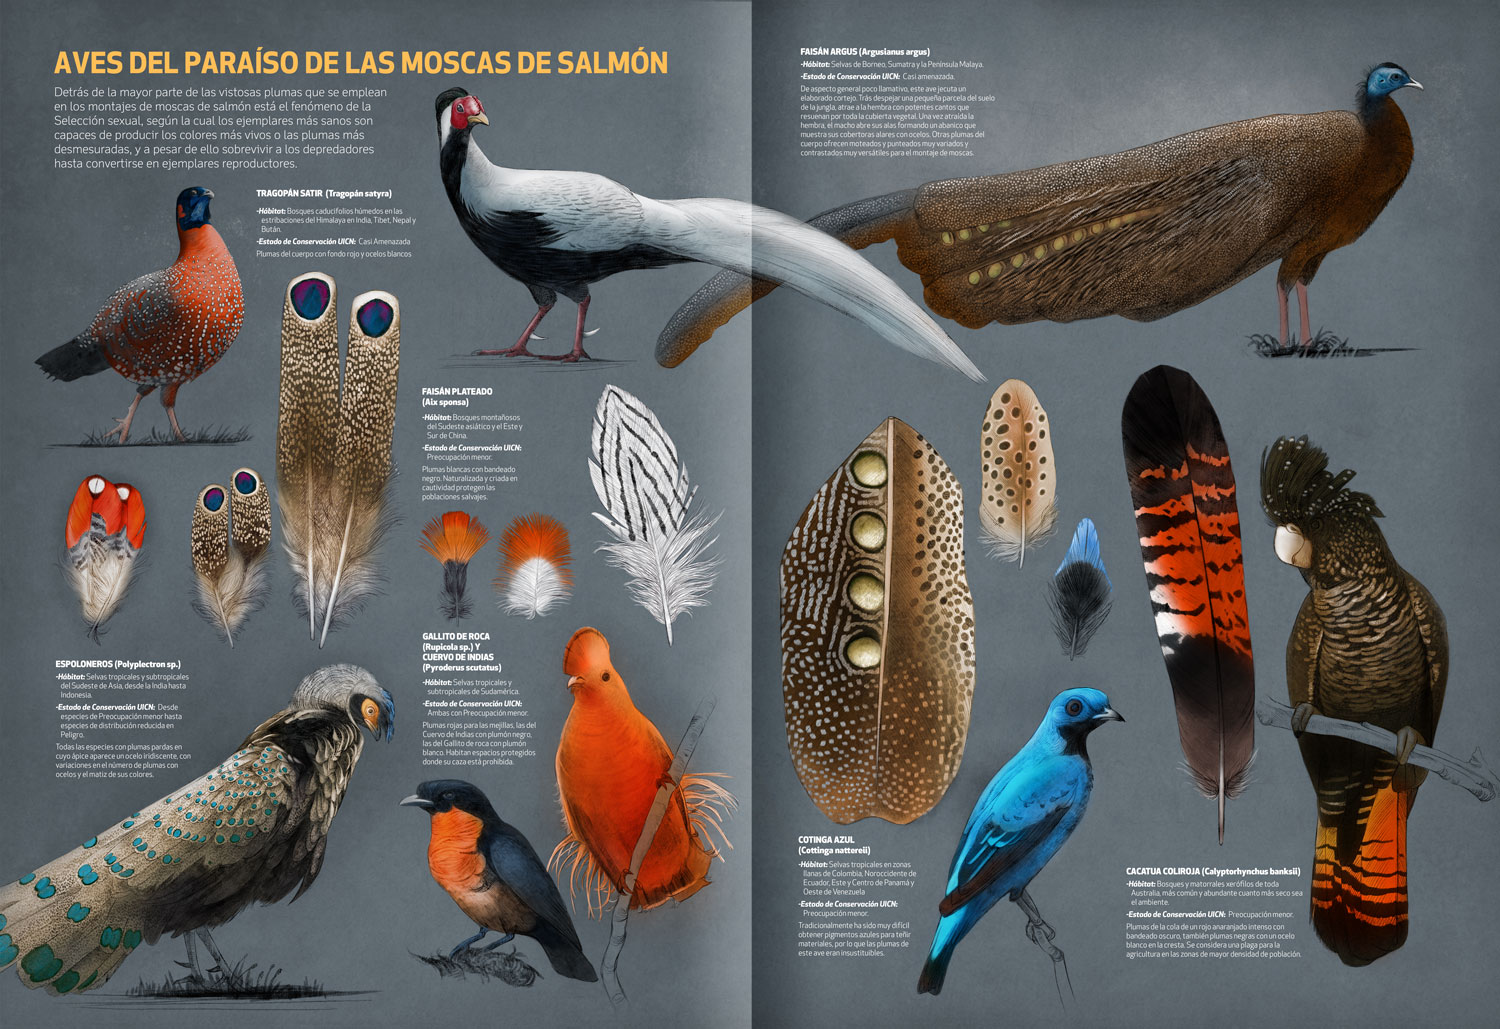 Fly Fishing Projects.Feathers for Salmon Fly Tying. Exotic species. Art by Román García Mora.